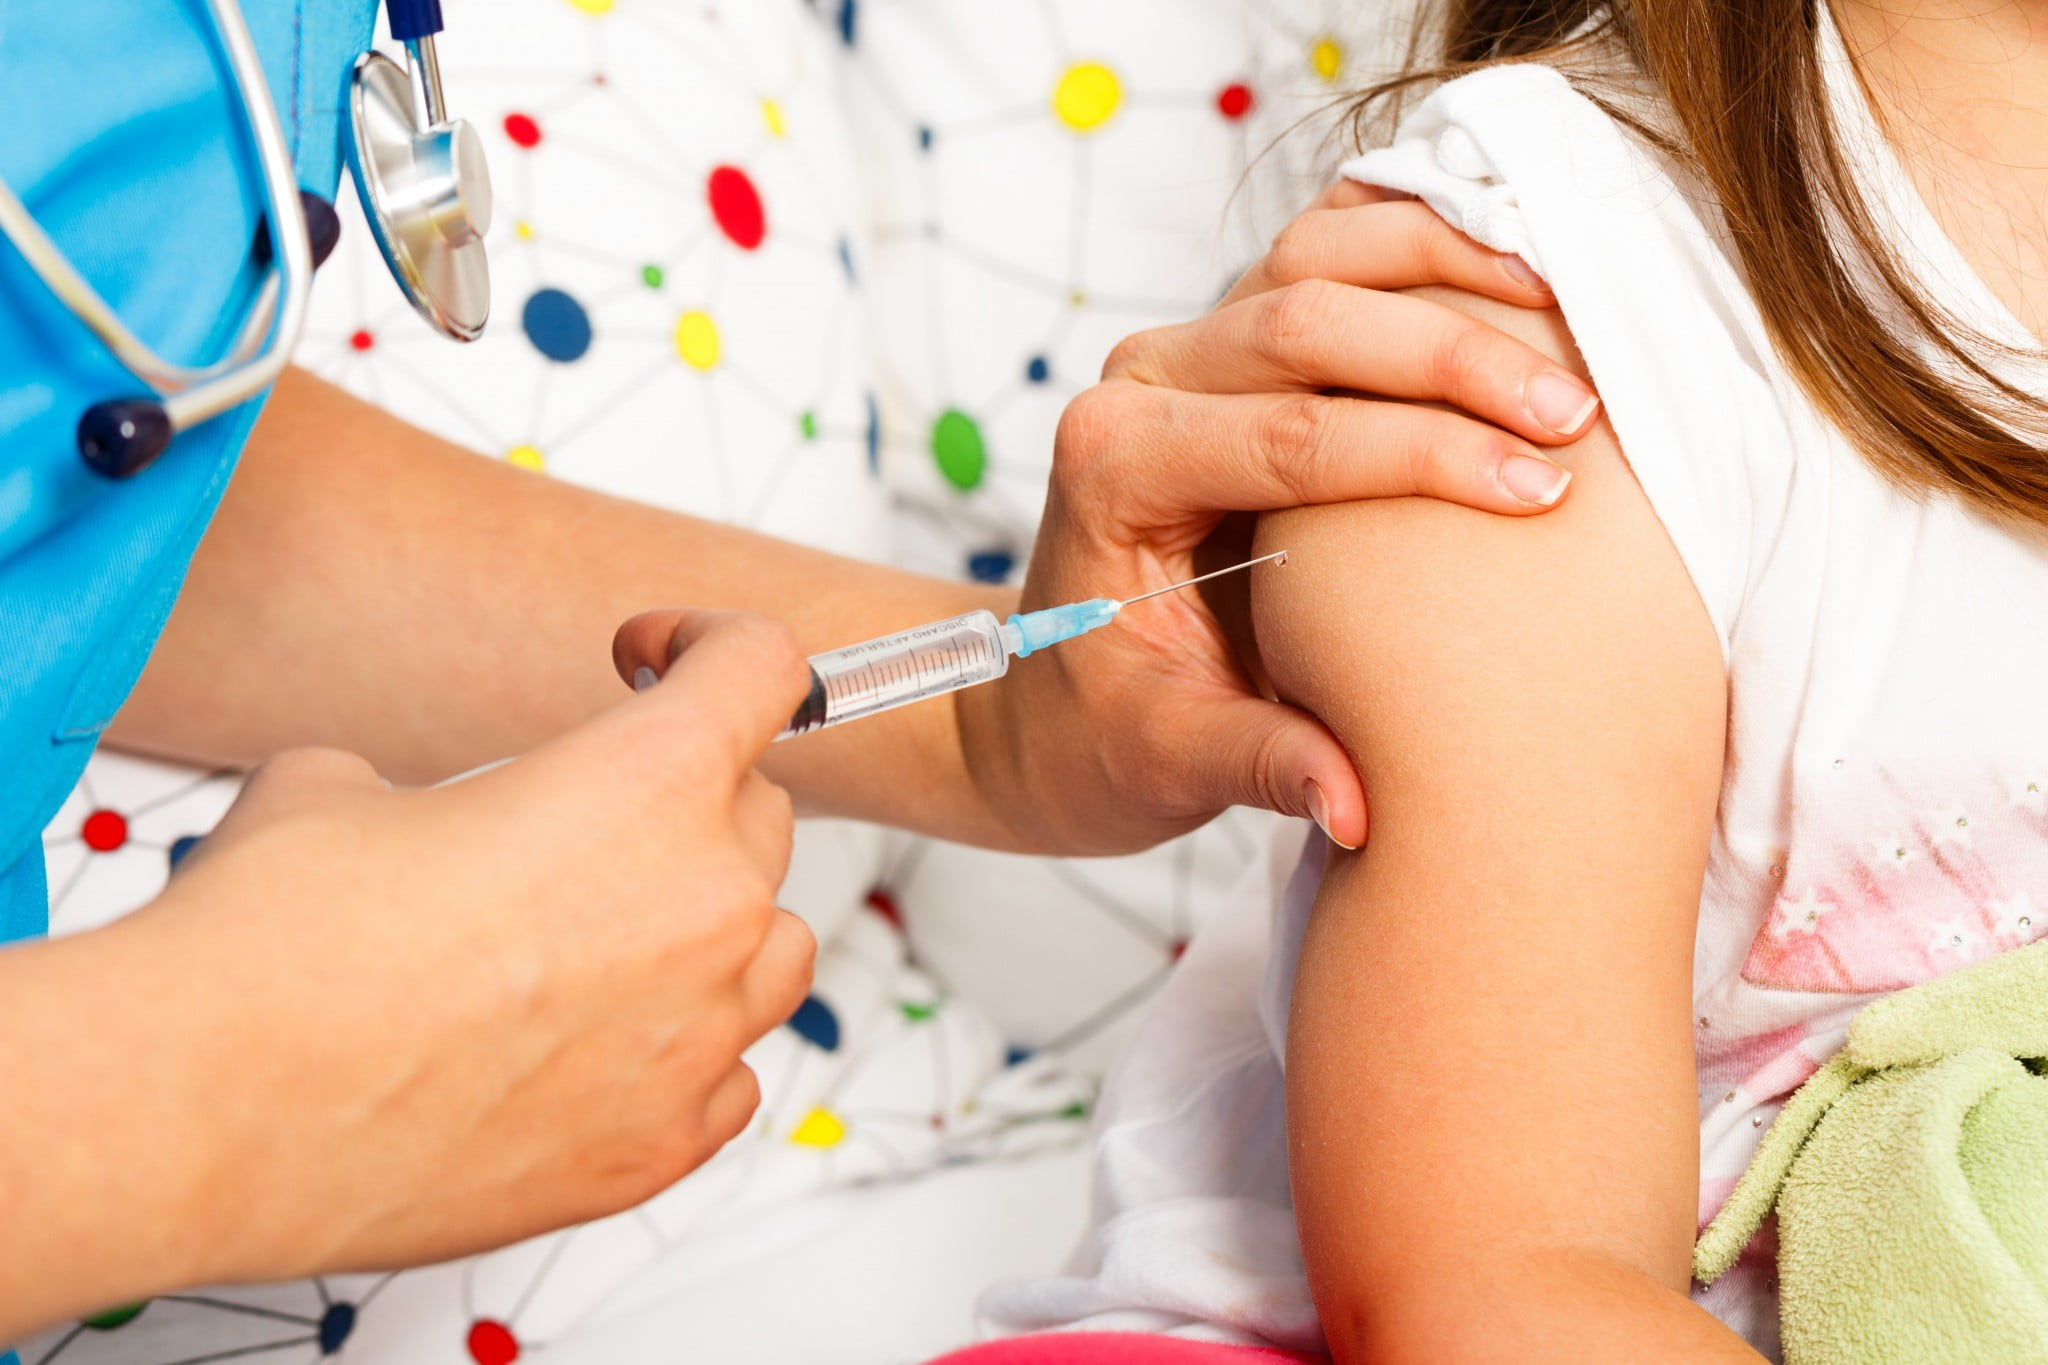 vaccine refusal: jab goes into child's arm